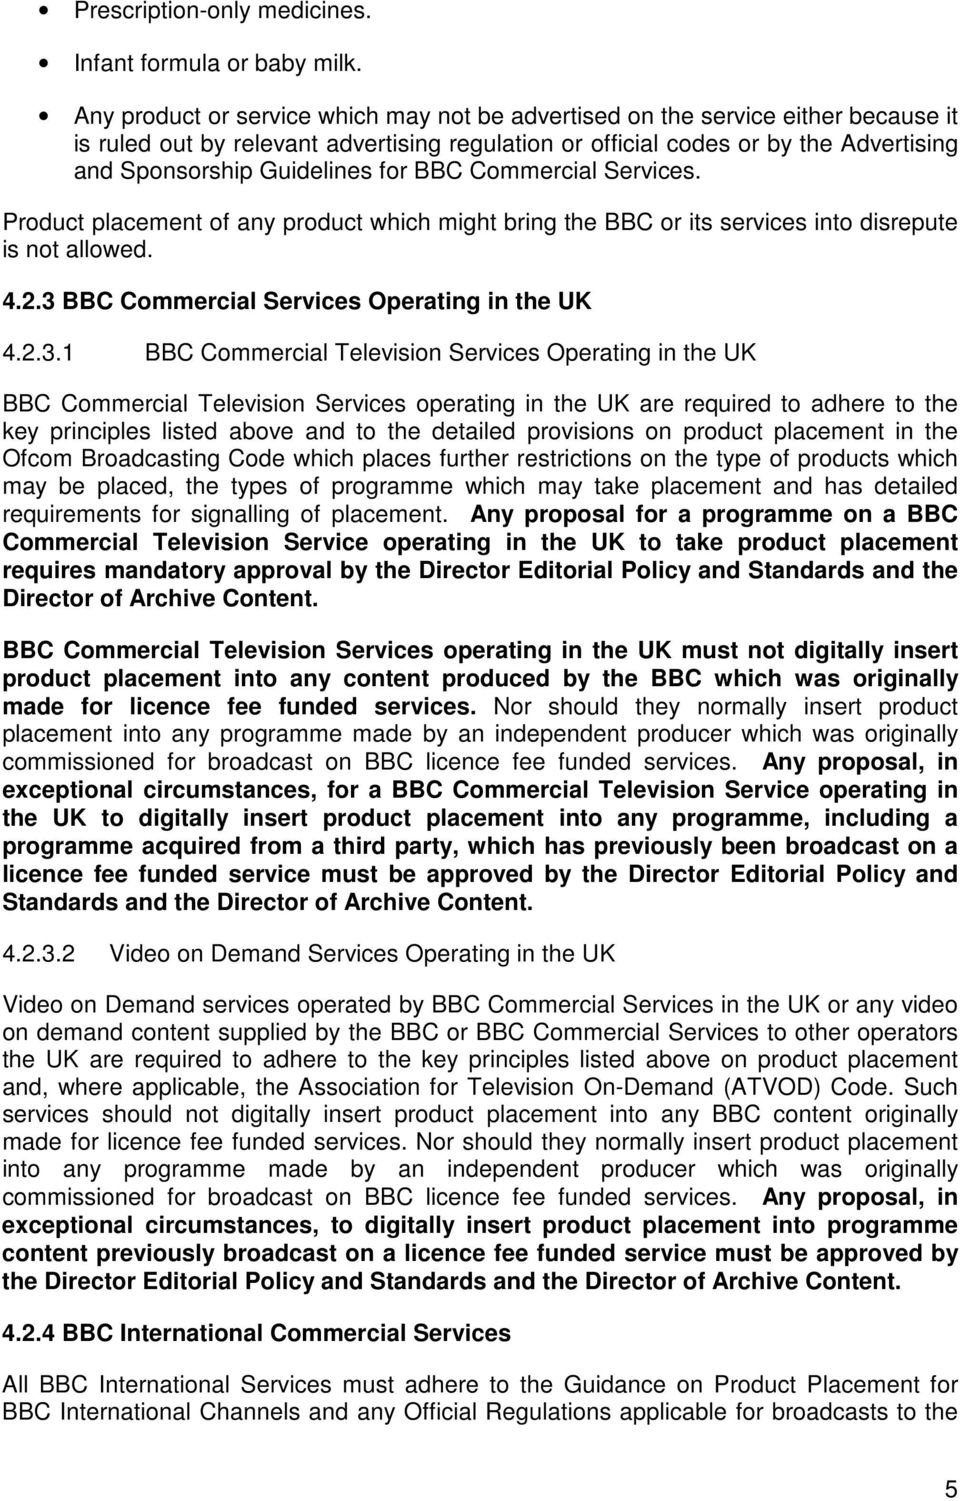 for BBC Commercial Services. Product placement of any product which might bring the BBC or its services into disrepute is not allowed. 4.2.3